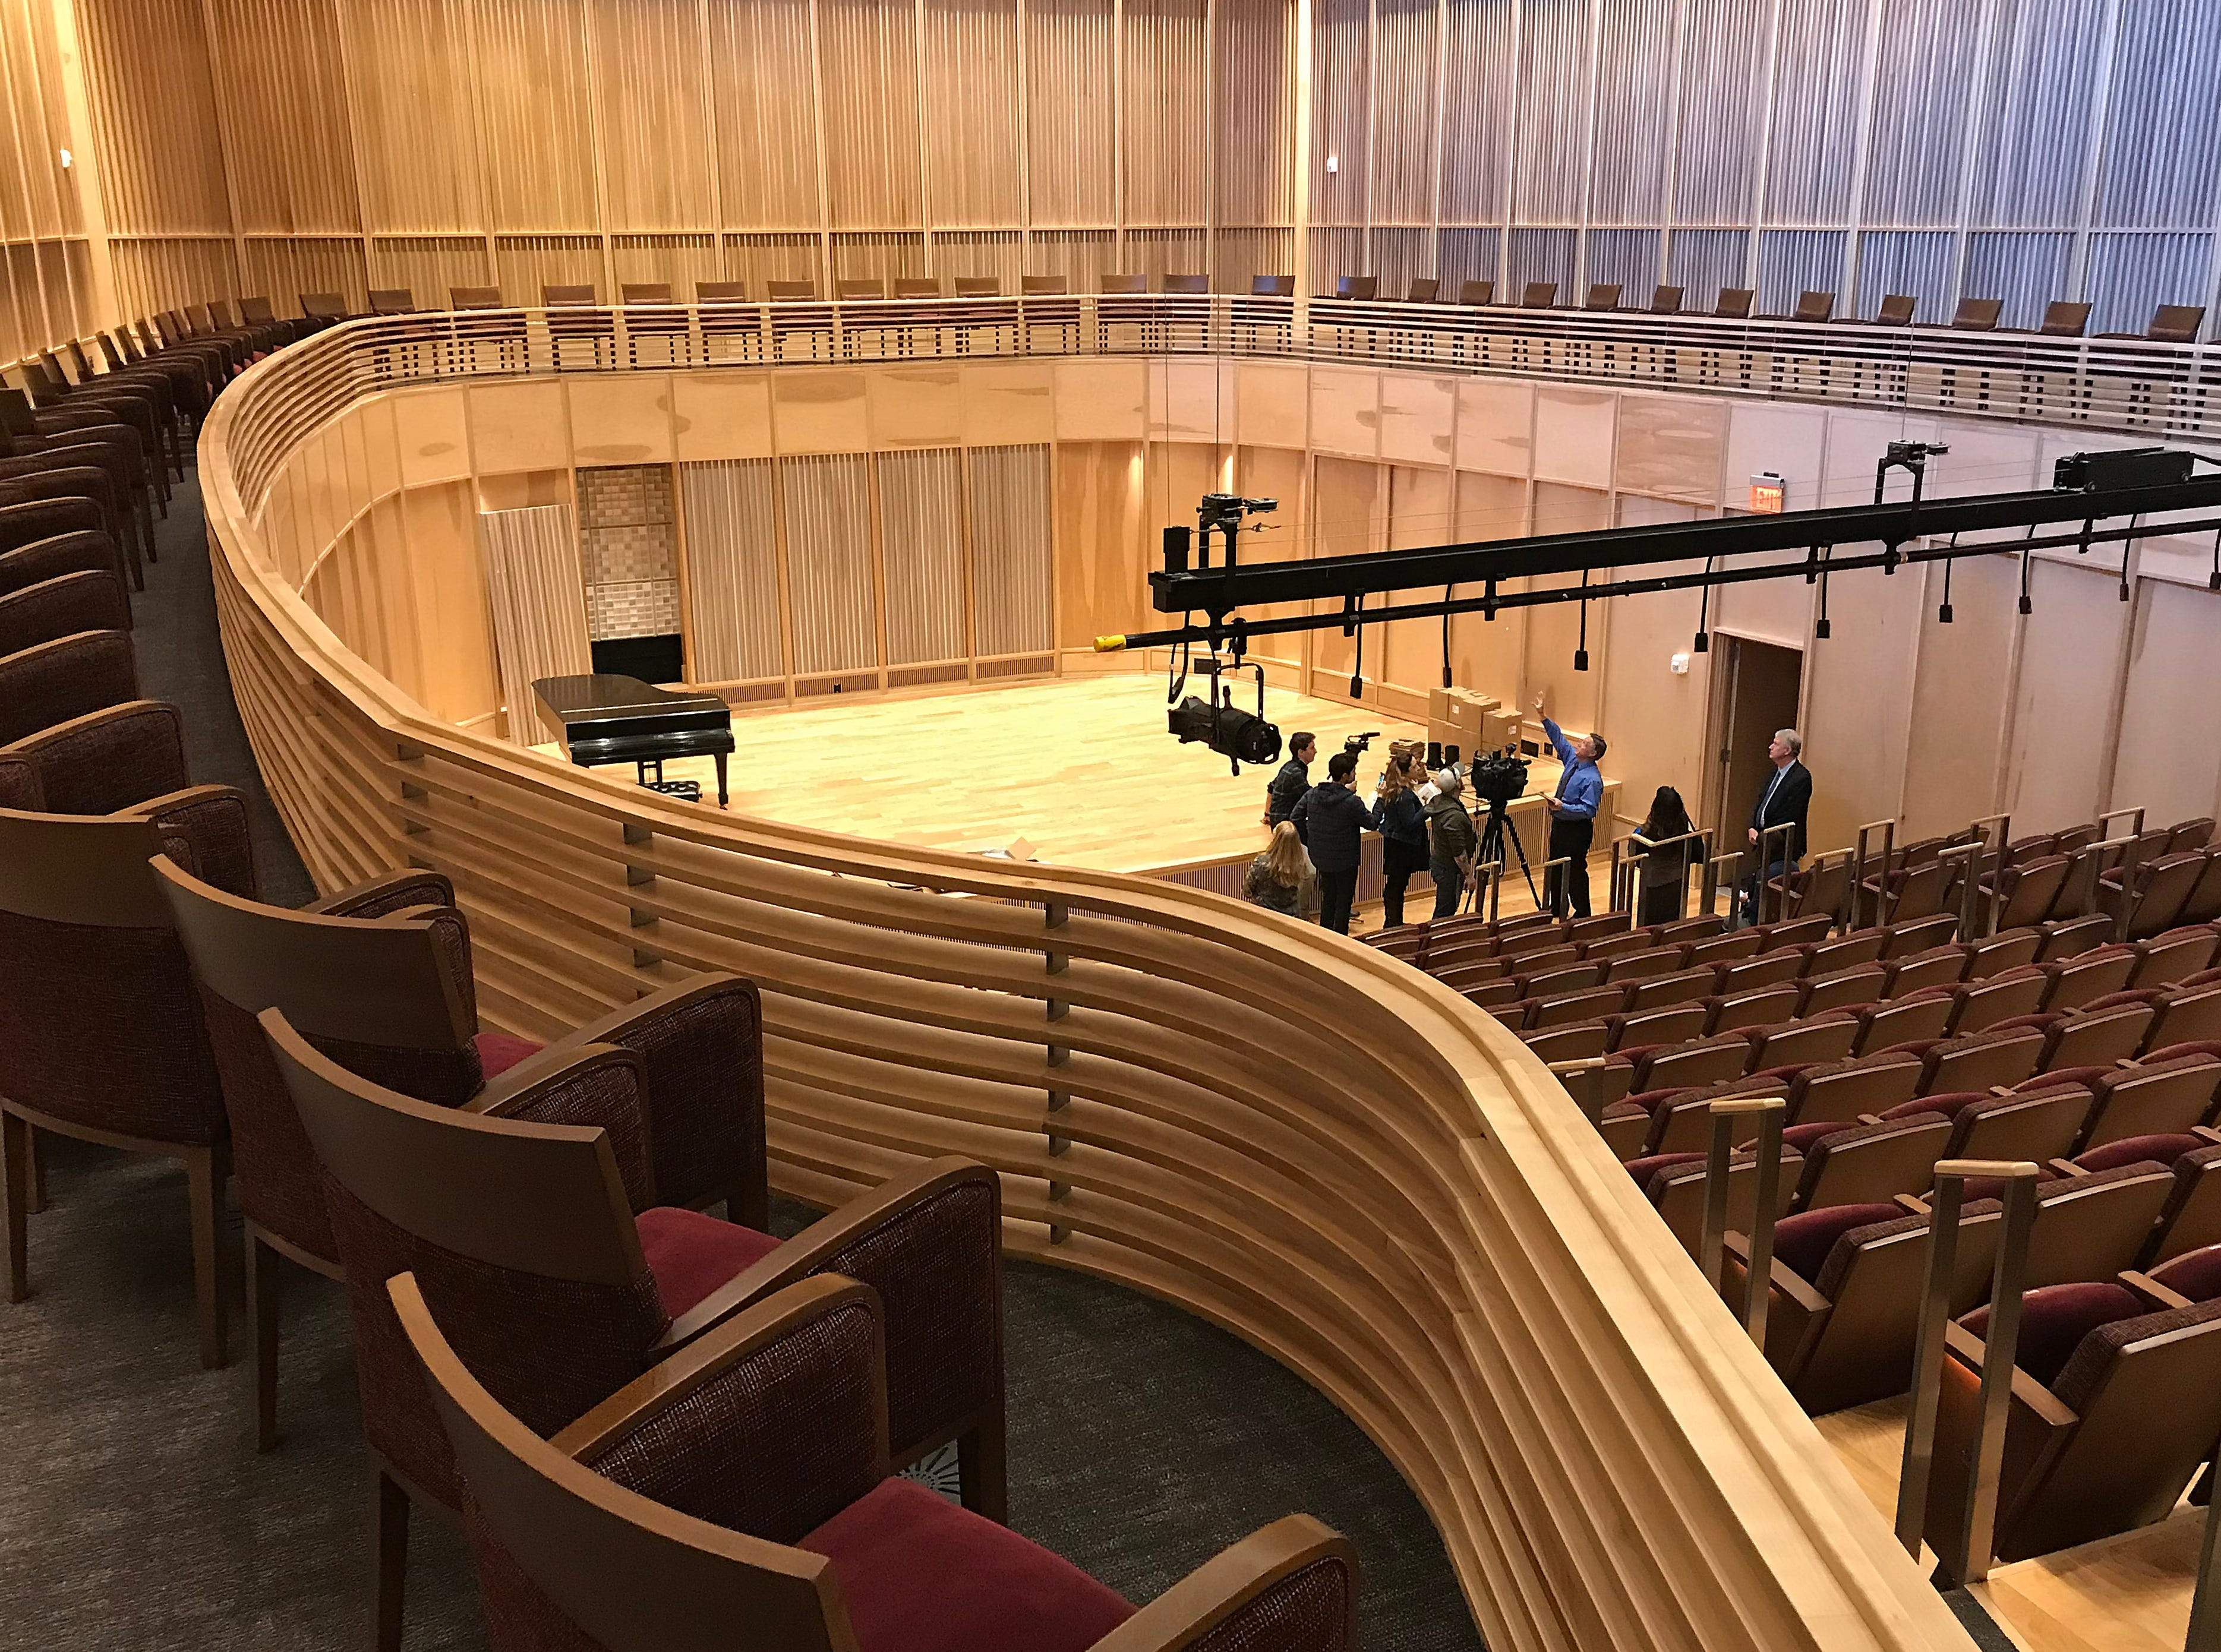 The recital hall is seen at the new University Arts Building on the campus of the University of Nevada, Reno on Feb. 19, 2019.